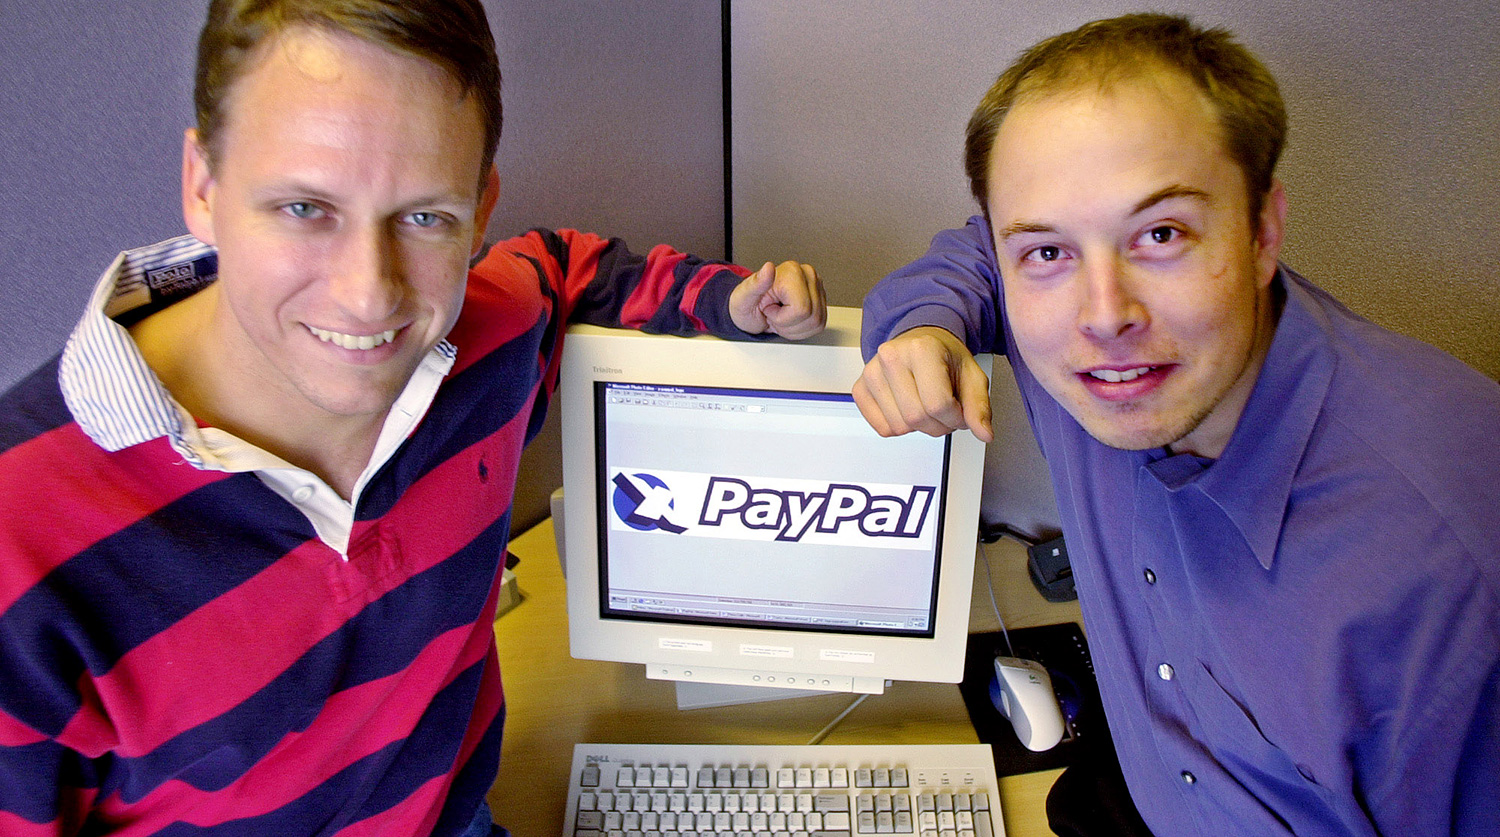 Elon Musk created PayPal